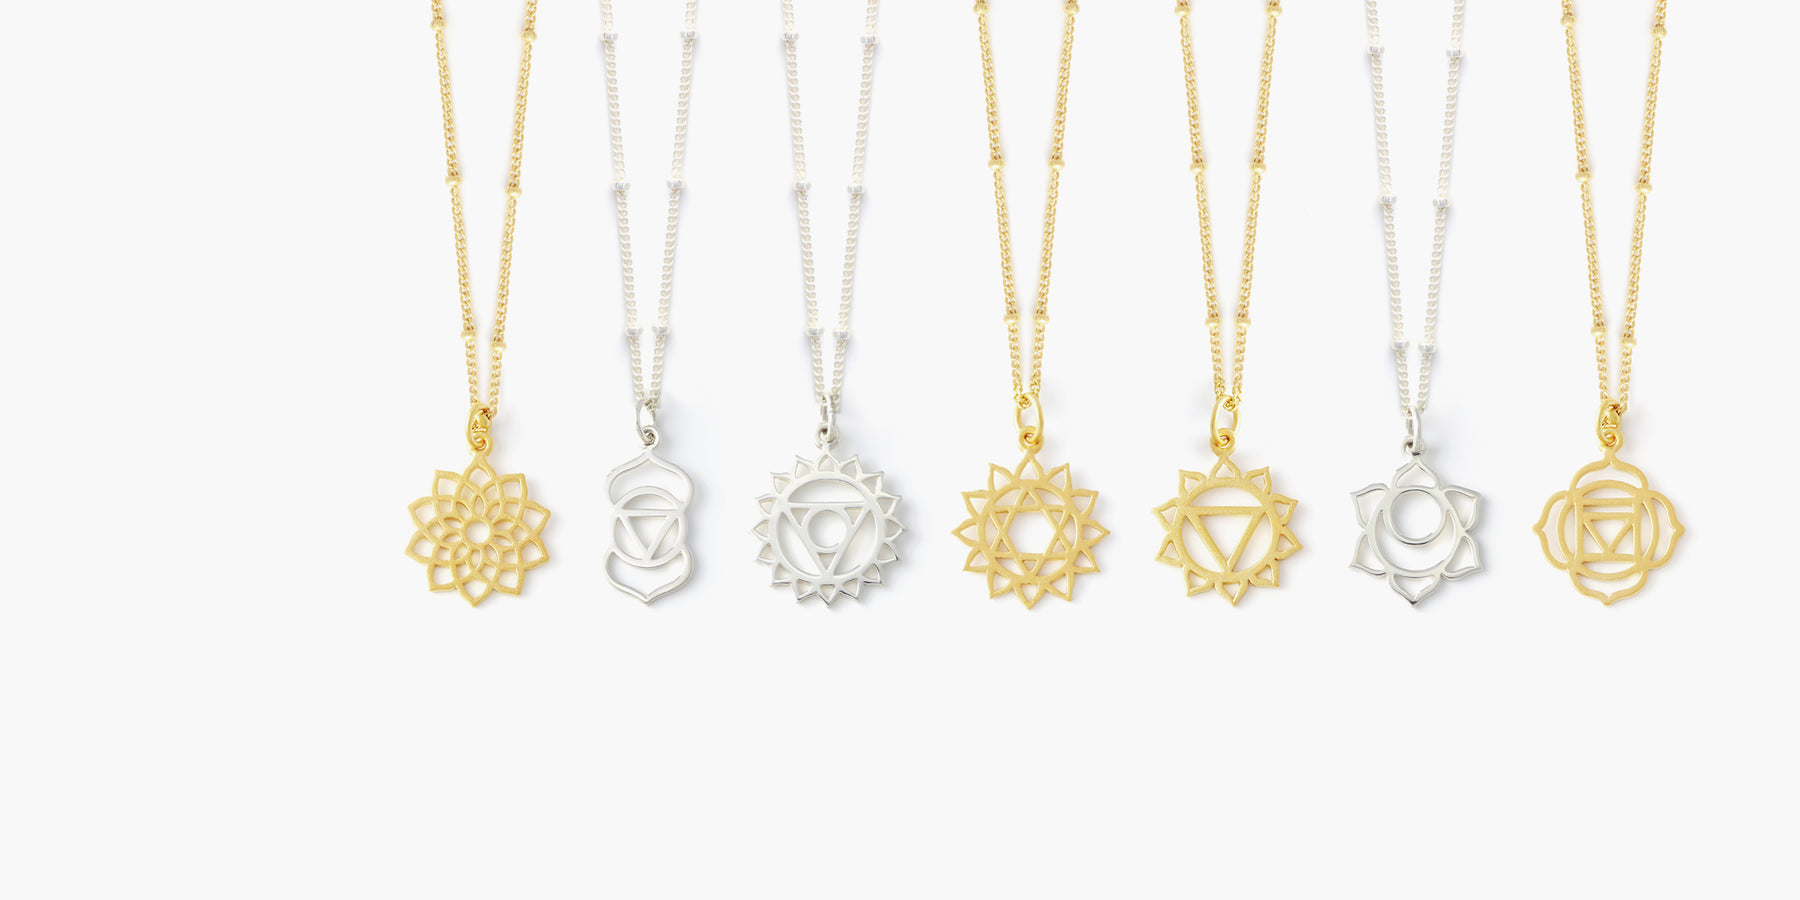 Crown, third eye, throat, heart, solar plexus, sacral, root chakra necklaces available in sterling silver & 24k gold plate.